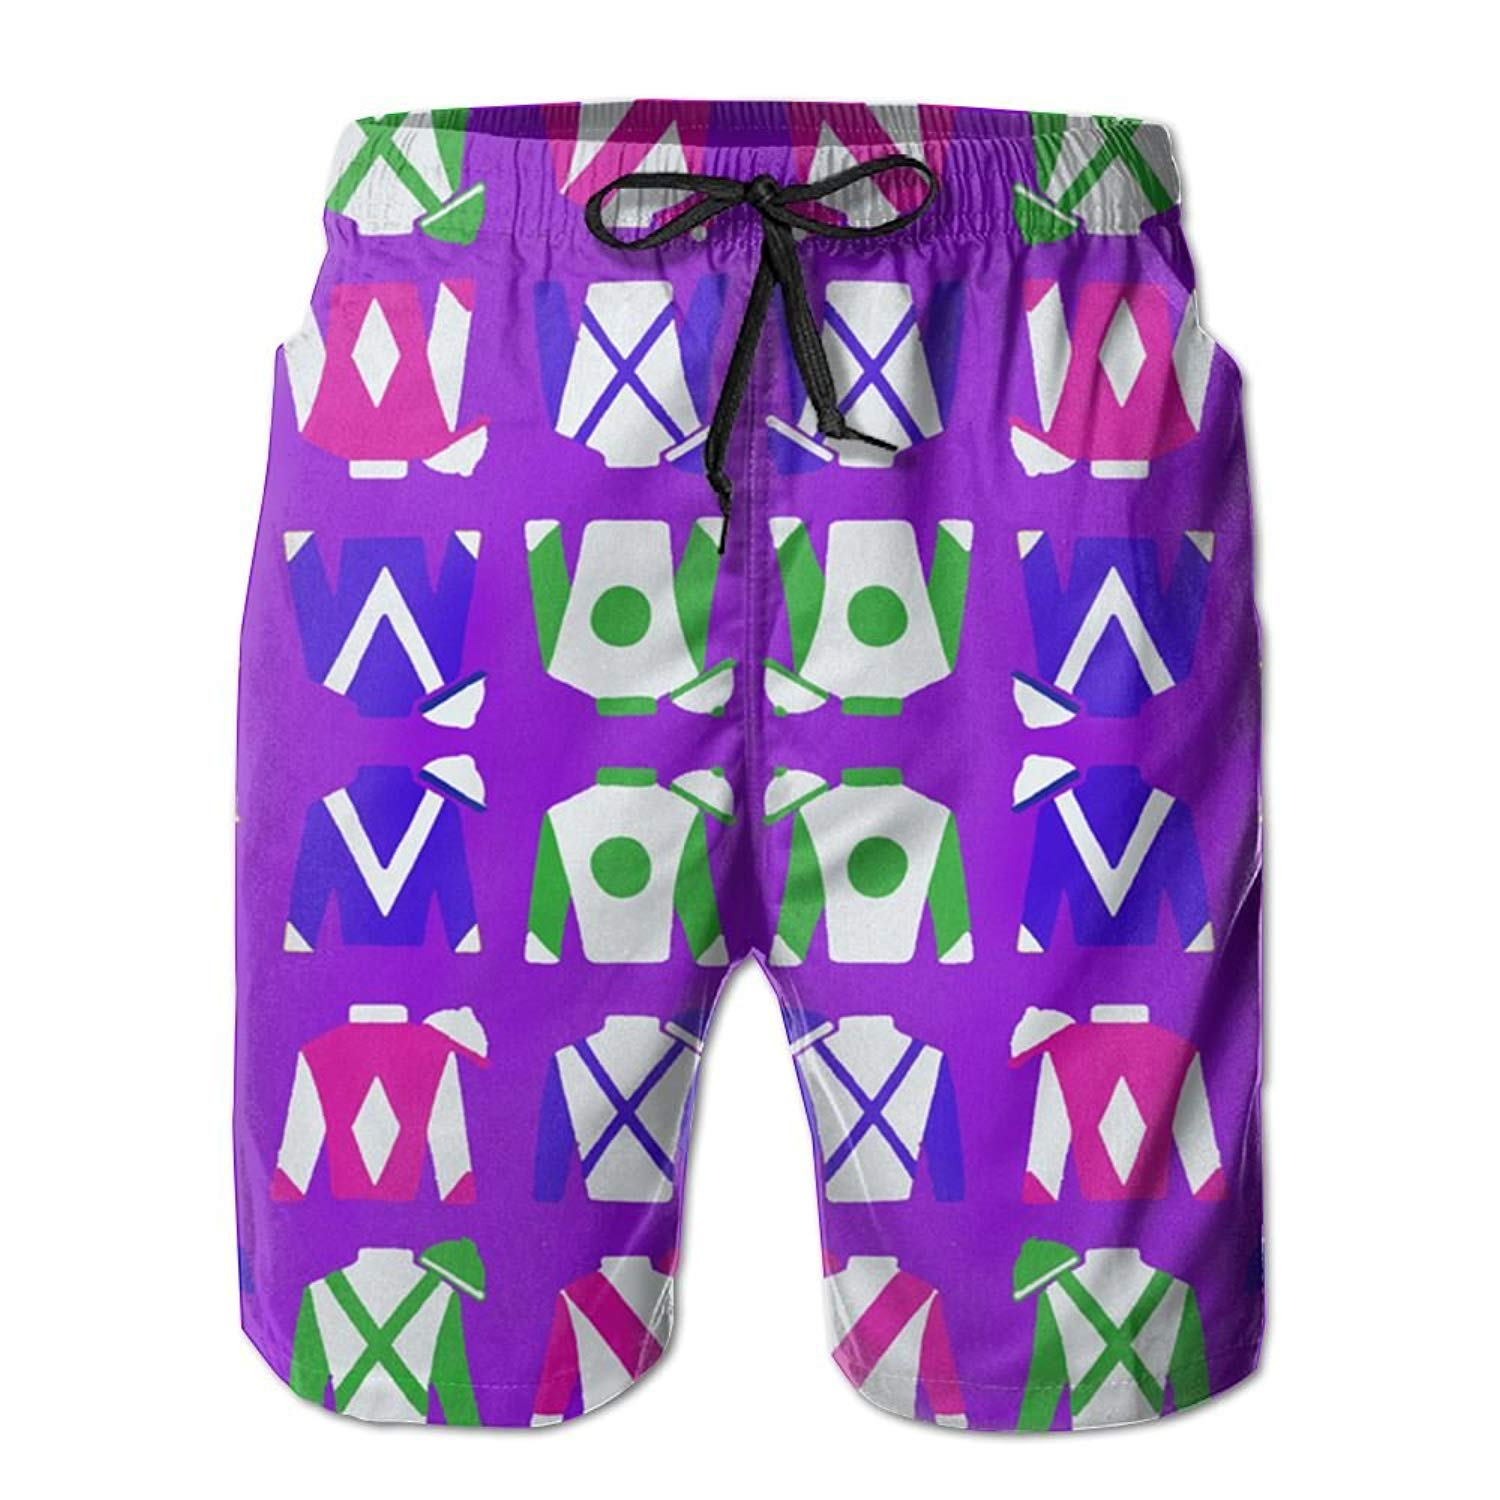 acd1f16610 Get Quotations · Purple Jockey Silks Men's Summer Boardshorts Outdoor Water  Sports Shorts Quick Dry Casual Beach Shorts